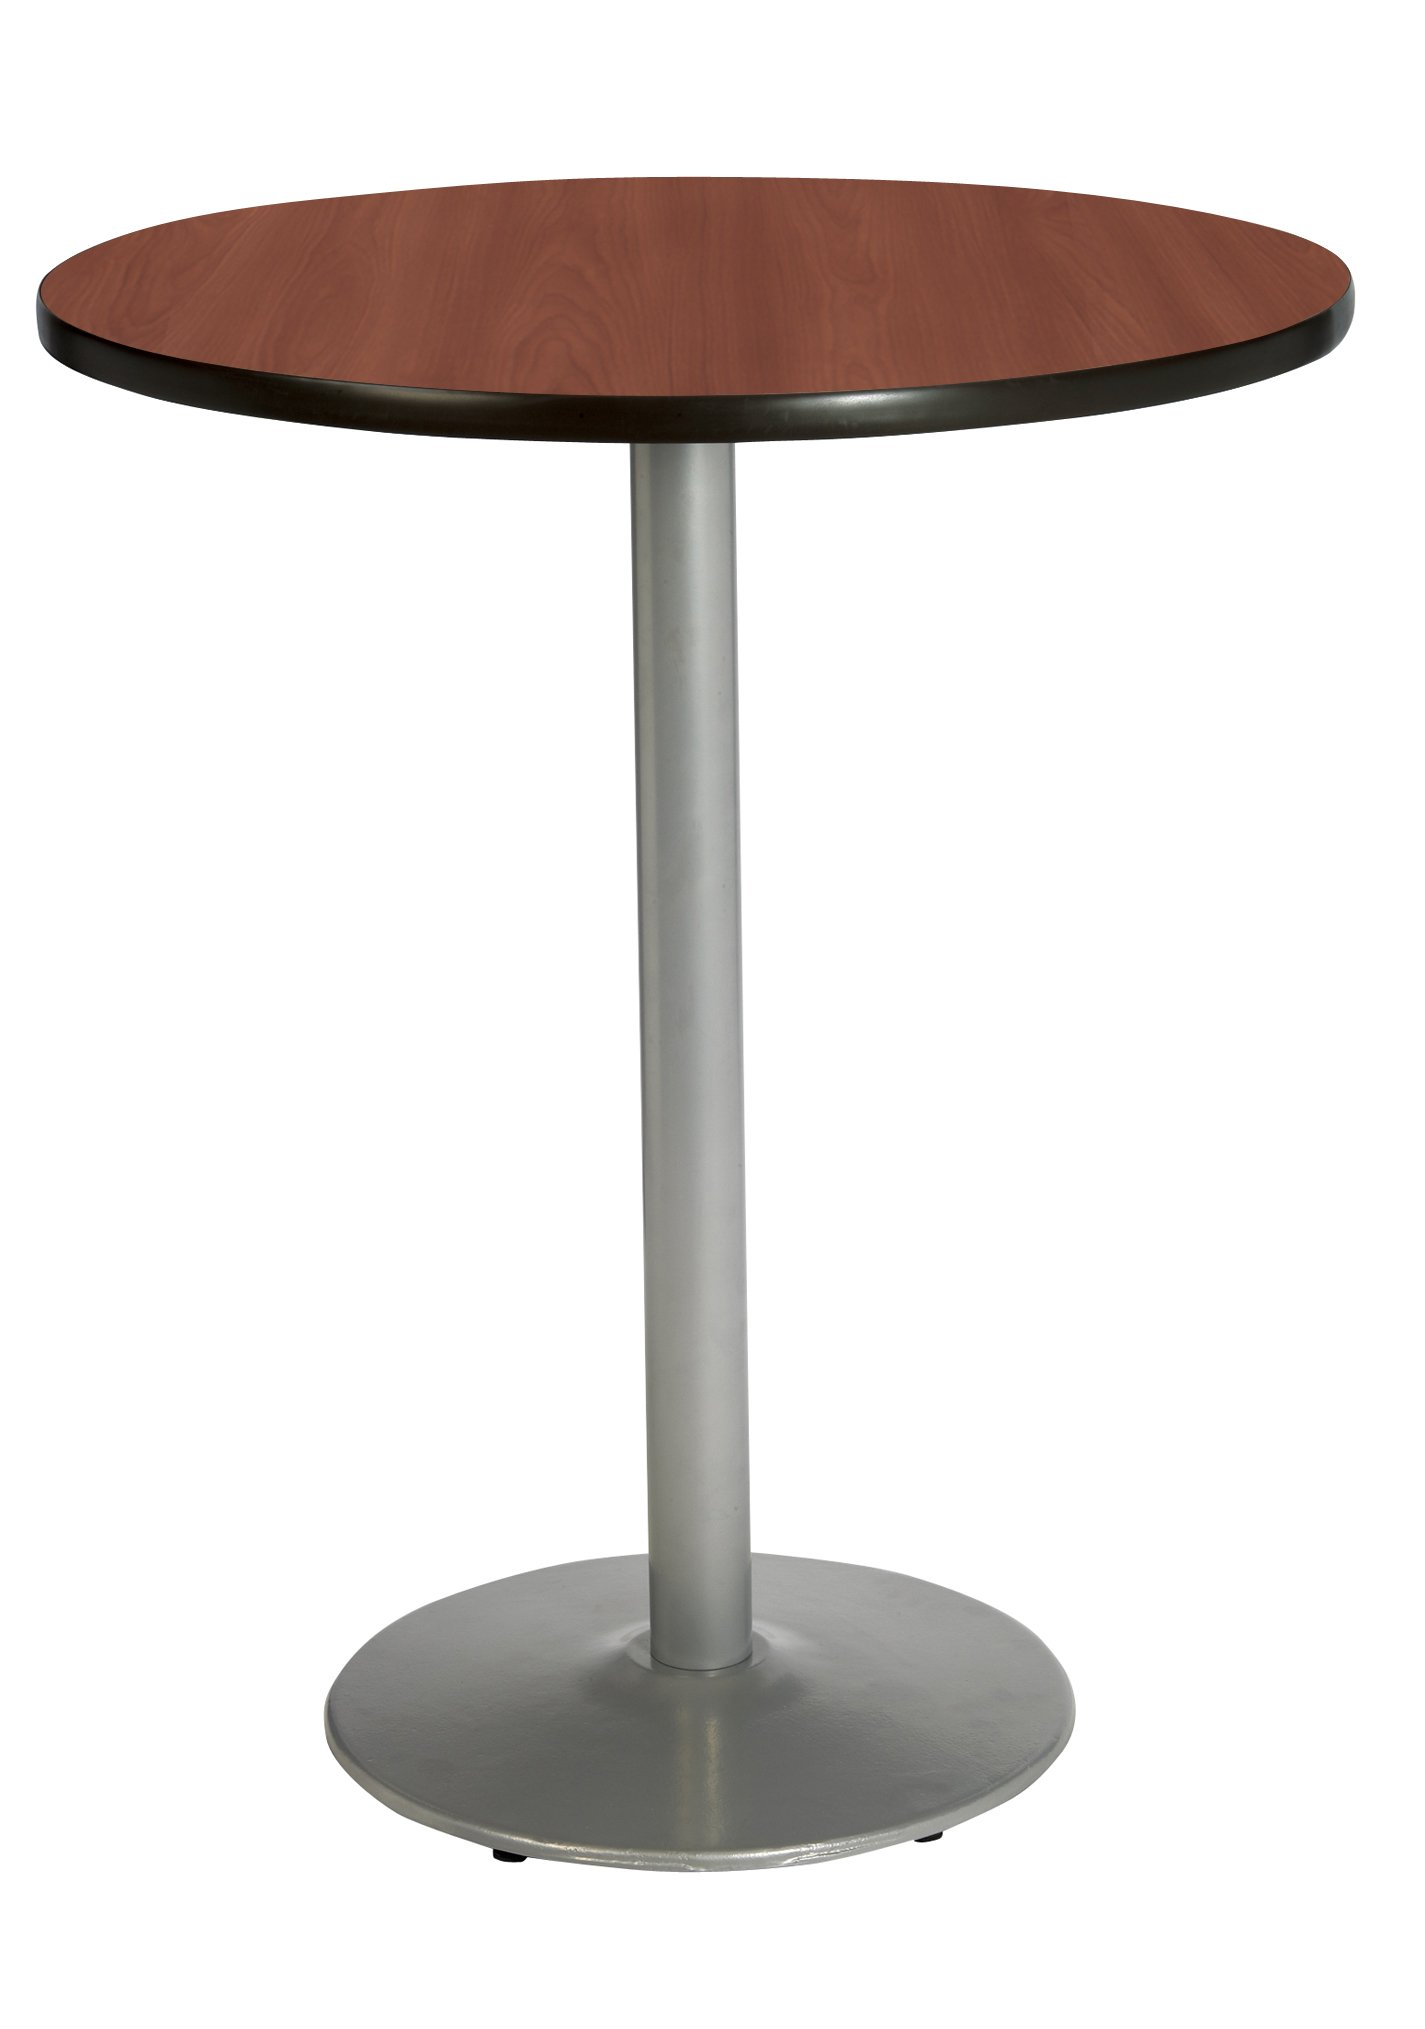 KFI Seating Round Bar Height Pedestal Table with Round Silver Base, Commercial Grade, 42-Inch, Dark Mahogany Laminate, Made in the USA